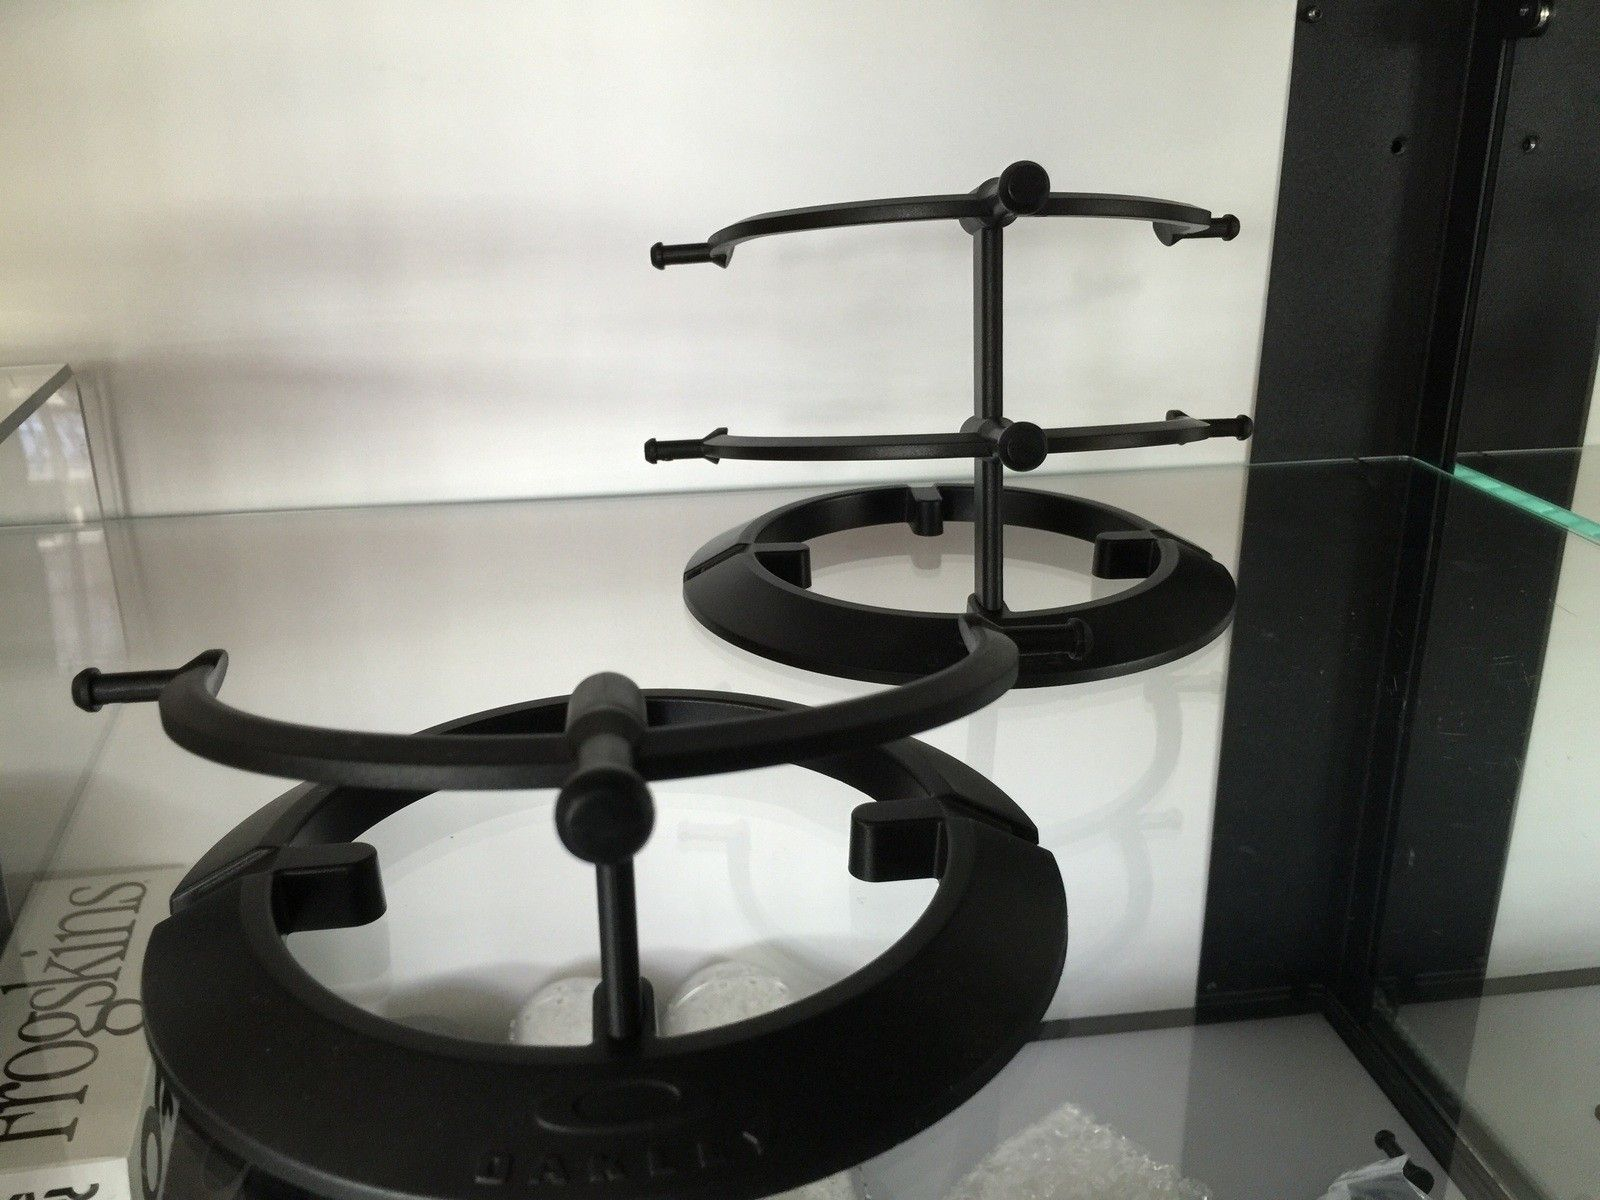 2-tier and 1-tier black plastic stands for a 3-tier stand - image.jpg